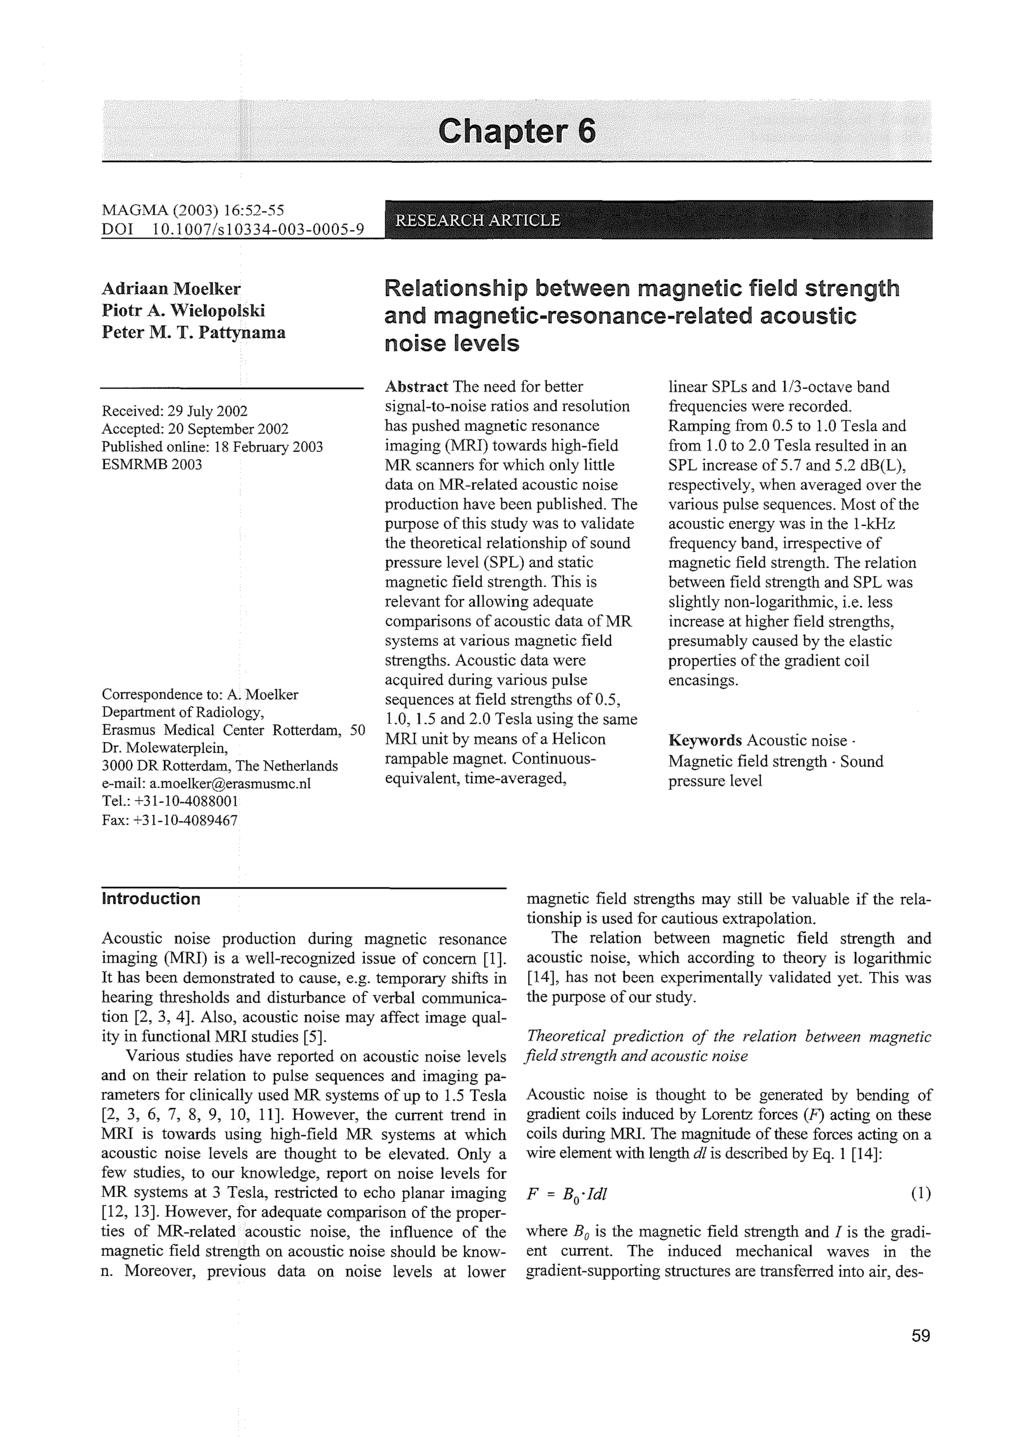 Evaluation Of Acoustic Noise In Magnetic Resonance Imaging Pdf The Ds1669 Is An Electronic Digital Rheostat Manufactured By Dallas Chapter 6 Magma 2003 1652 55 Dol 101007 S 10334